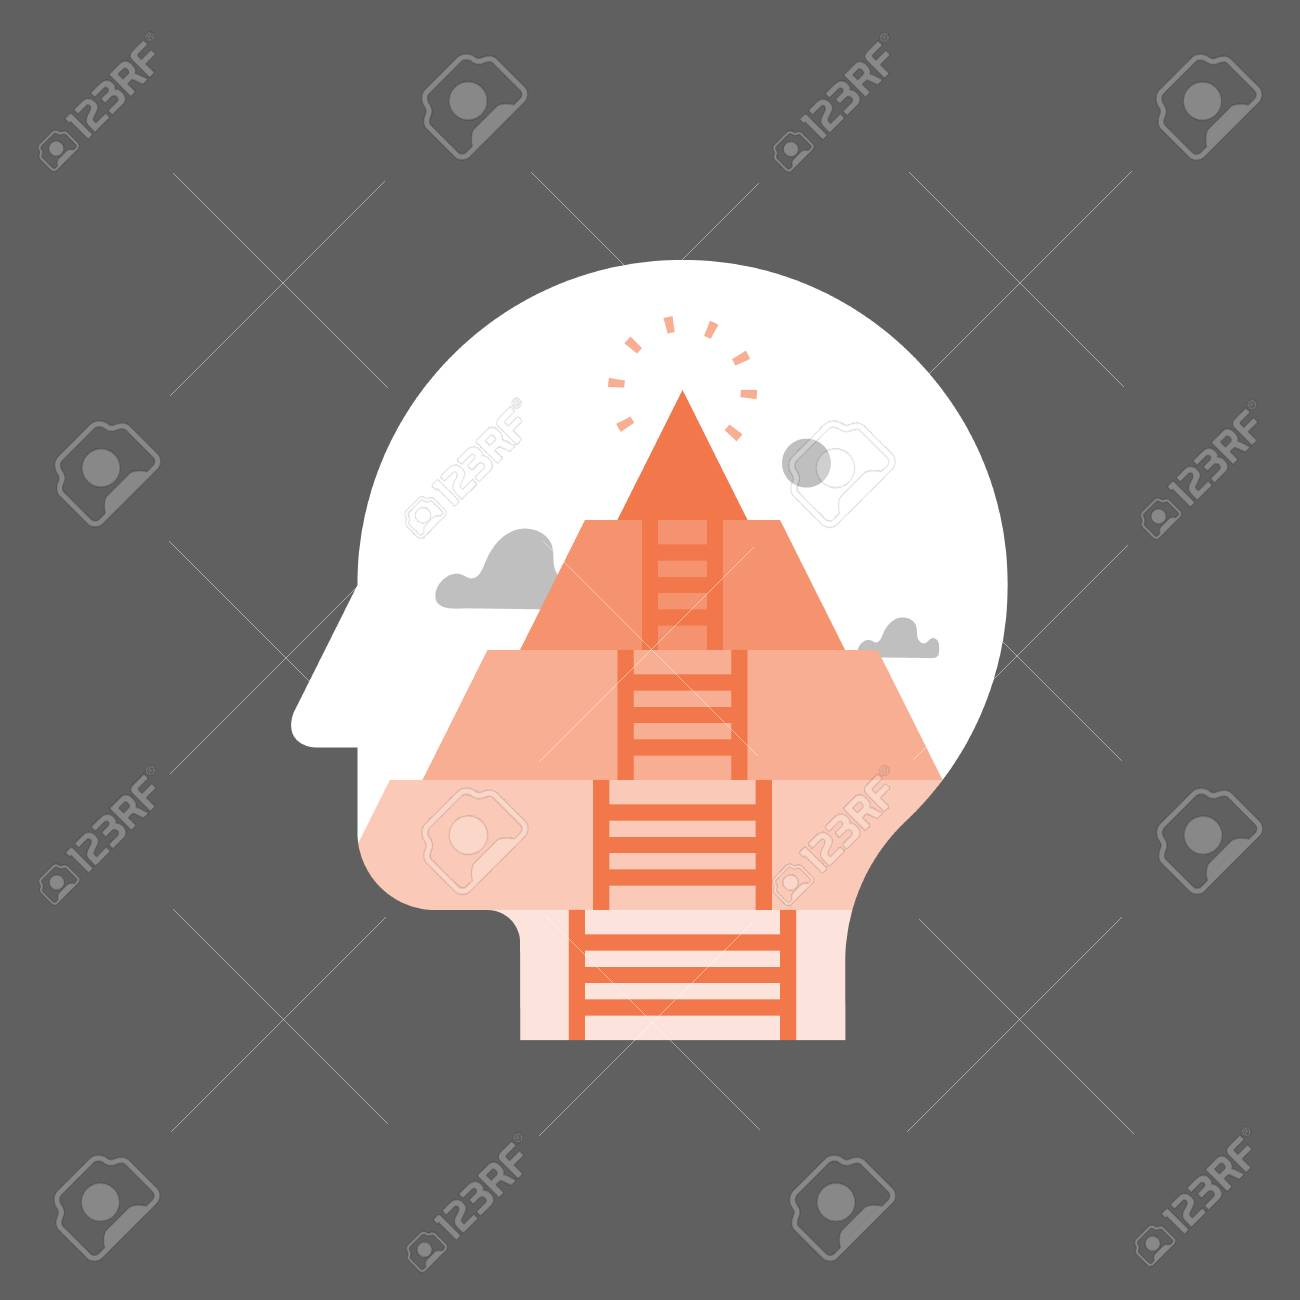 Pyramid hierarchy of human needs, psychoanalysis concept, mental development stage, self actualization, personal growth and fulfillment, self awareness and mindfulness, life meaning, vector icon - 105675107